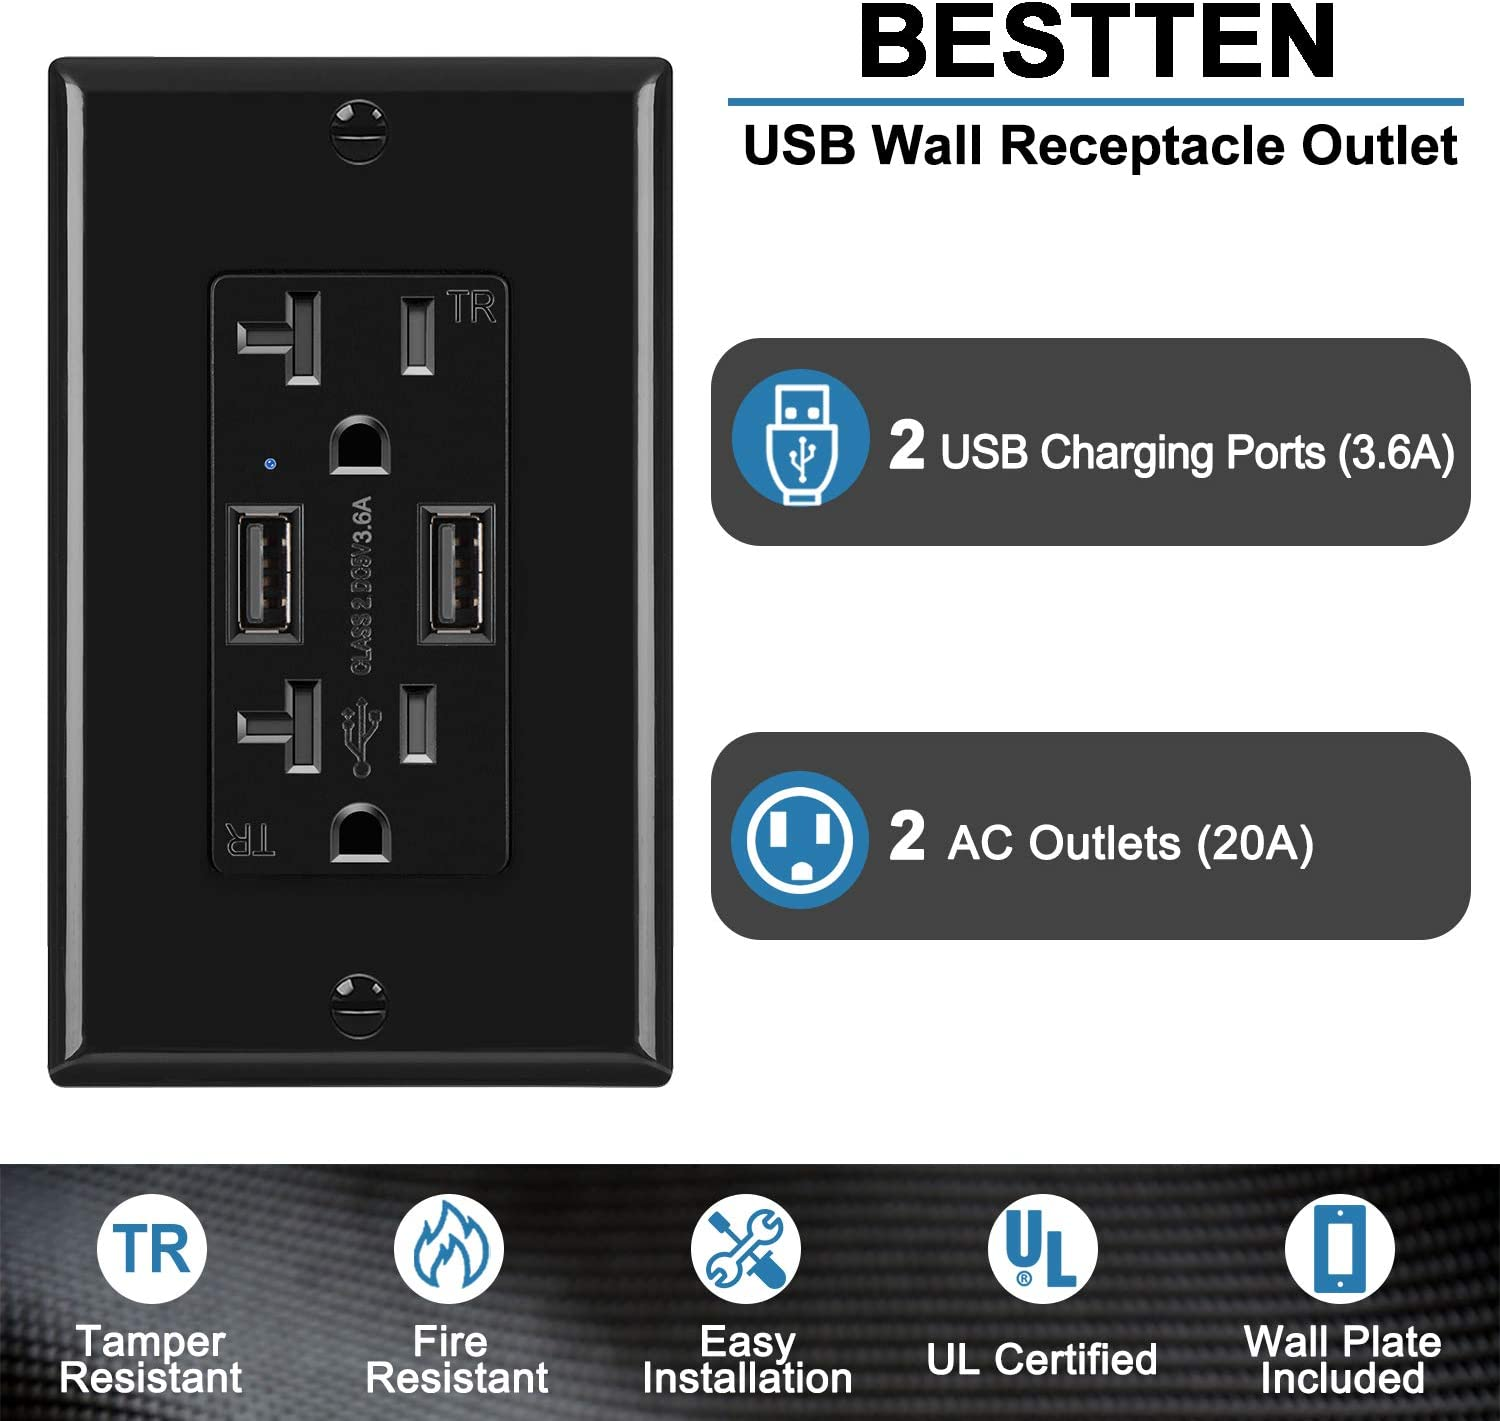 Black BESTTEN UL 3.6A Dual USB Receptacle Outlet with 20 Amp Tamper Resistant Sockets Wall Plate Included 5 Pack